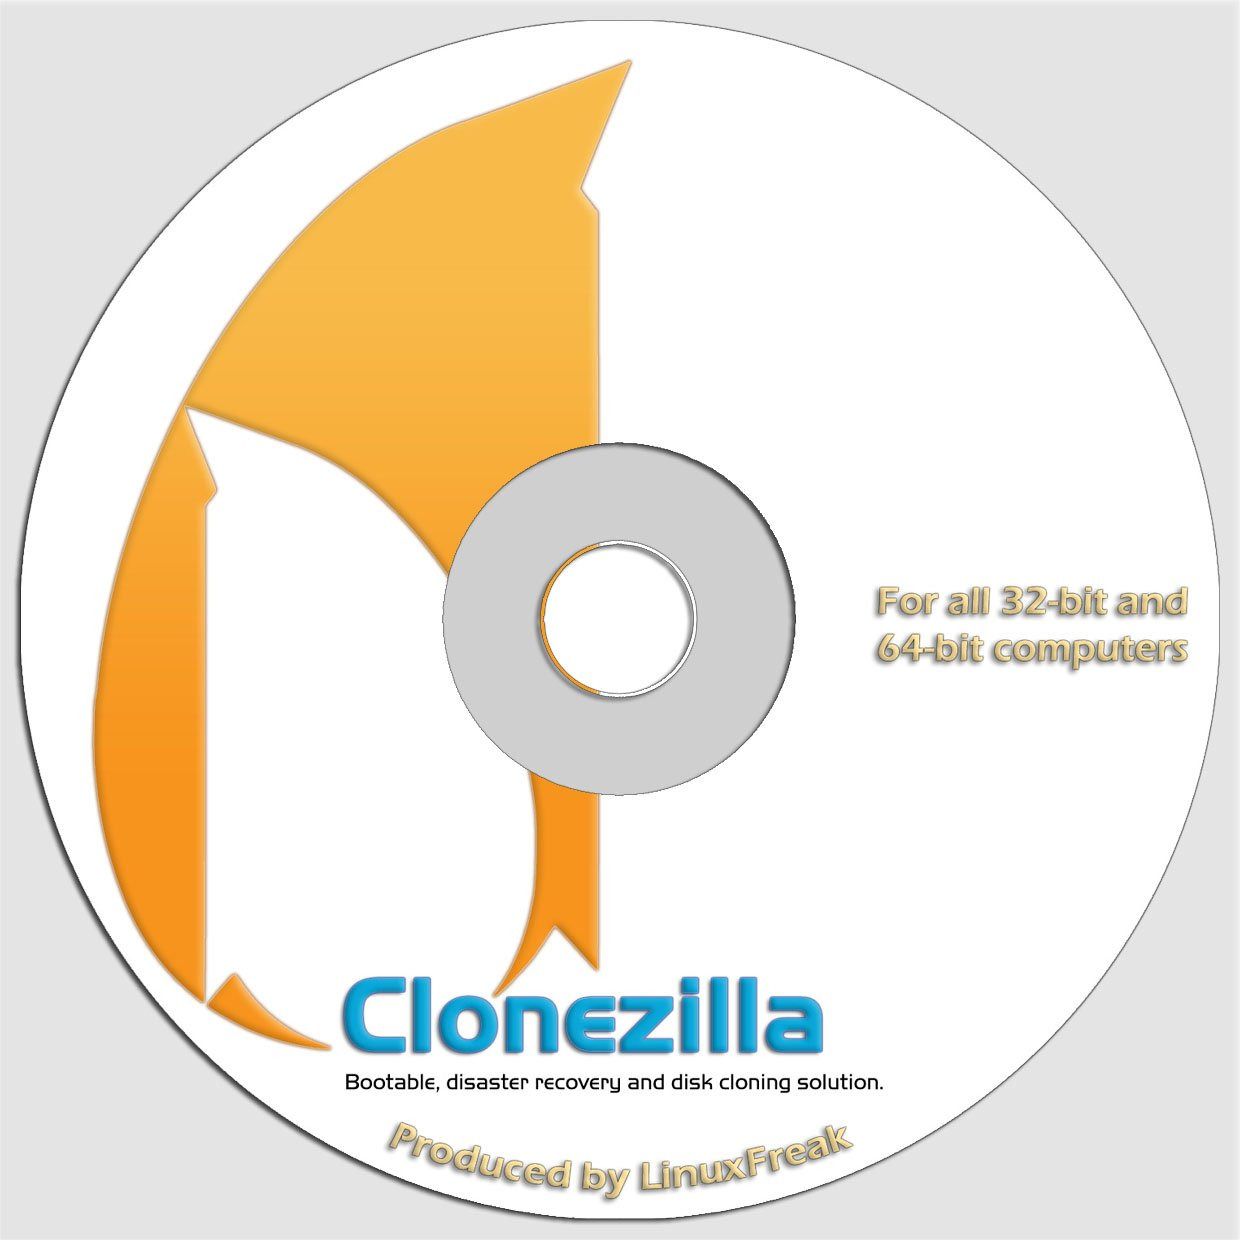 CloneZilla - System Deployment and Imaging Solution similar to Norton Ghost by LinuxFreak